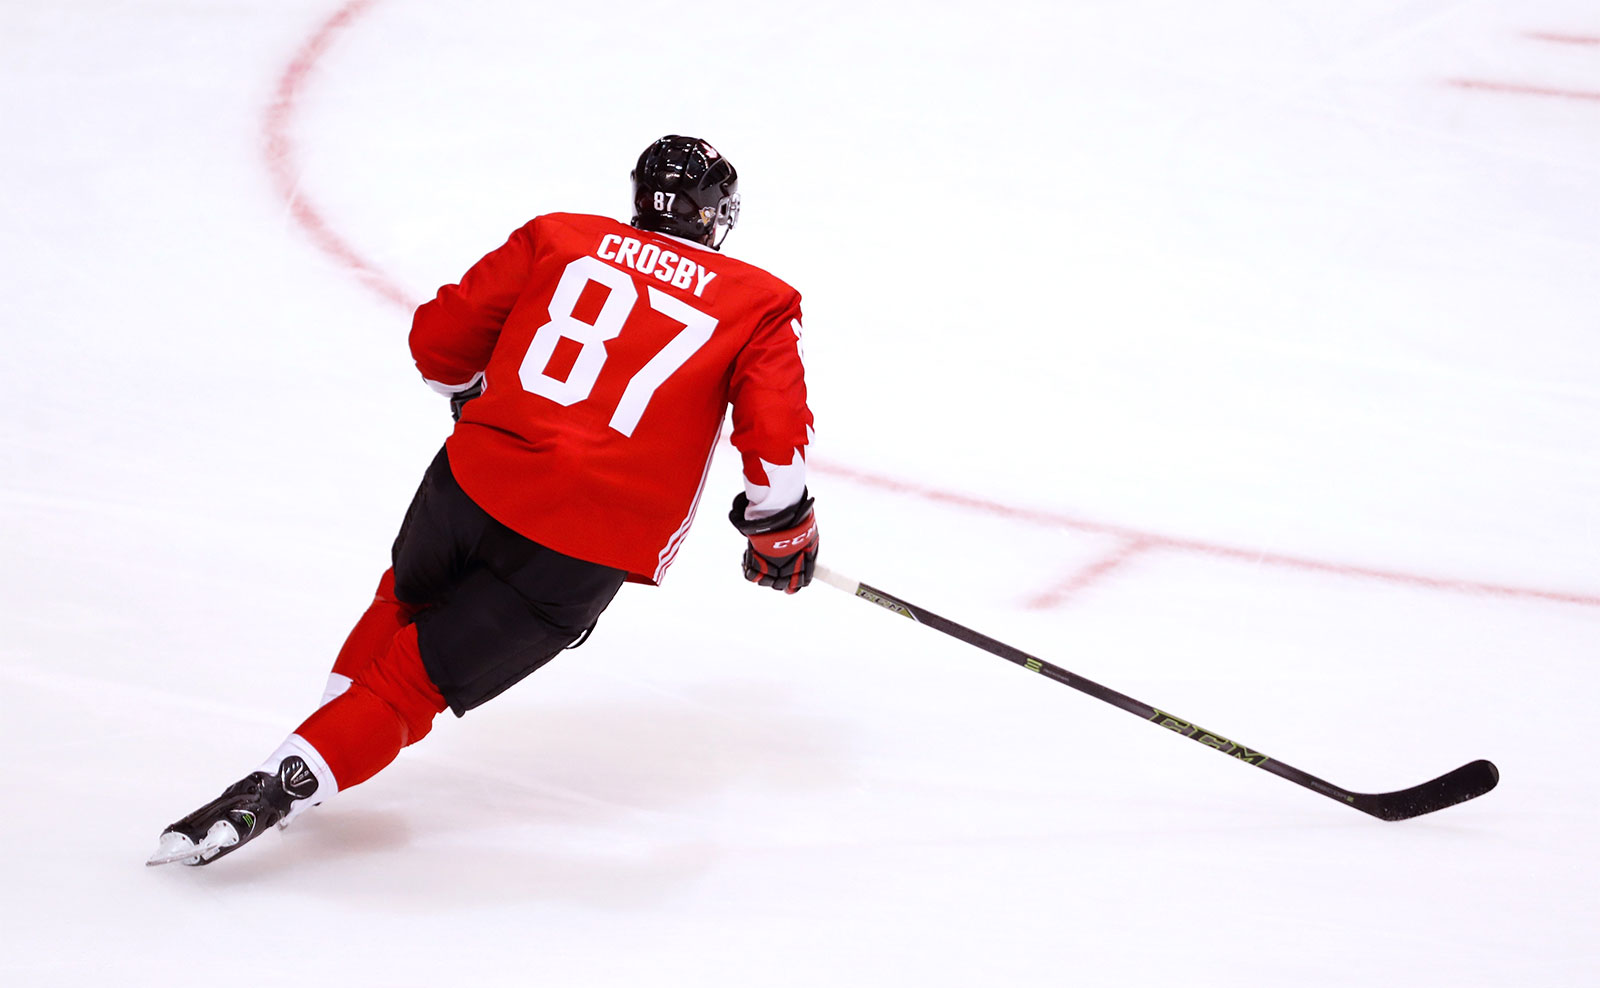 Sidney Crosby #87 of Team Canada warms up prior to playing Team Czech Republic during the World Cup of Hockey on September 17, 2016 in Toronto, Canada. (Gregory Shamus/Getty Images)